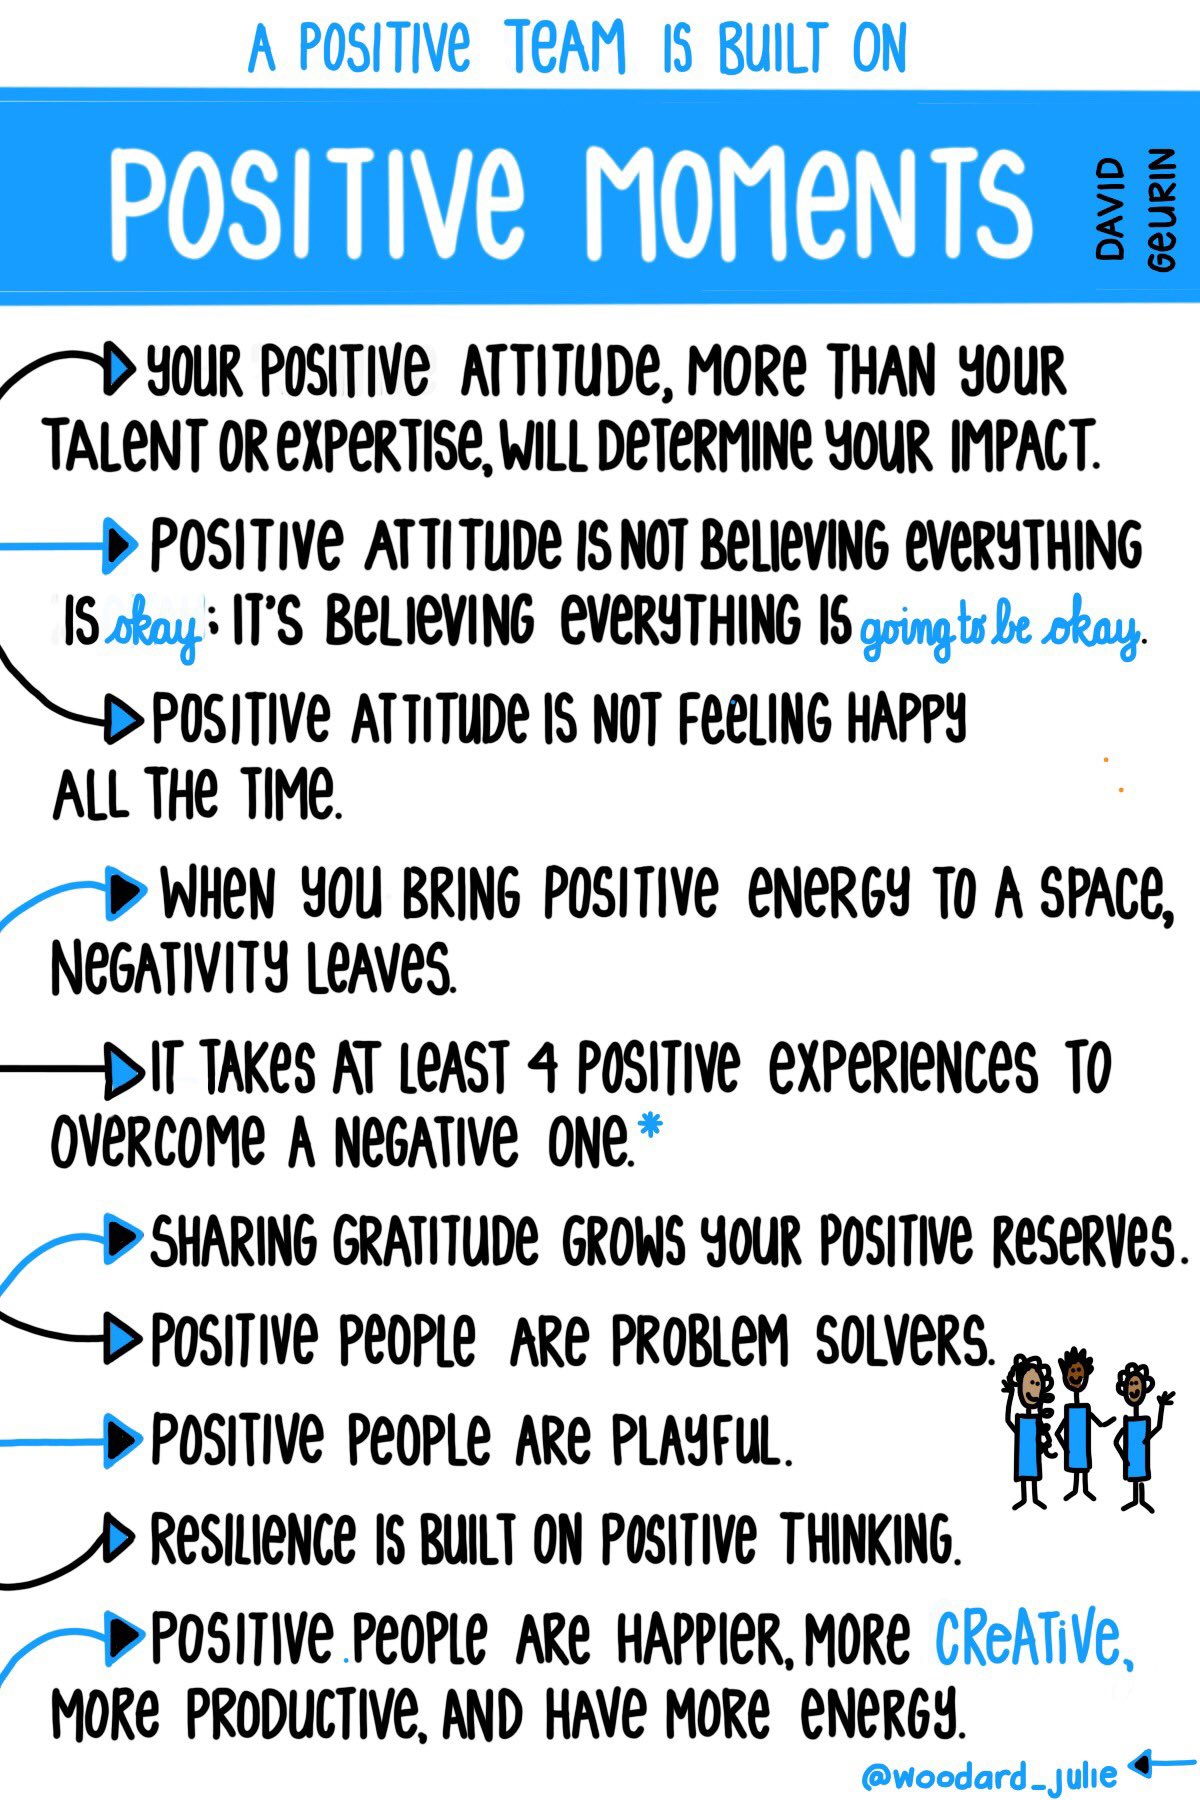 It takes four positive experiences to overcome a negative one #sketchnote via @woodard_julie based on ideas by @DavidGeurin #edchat #mindsets #teaching #positivity #eduleader https://t.co/wKkZa9s7qB